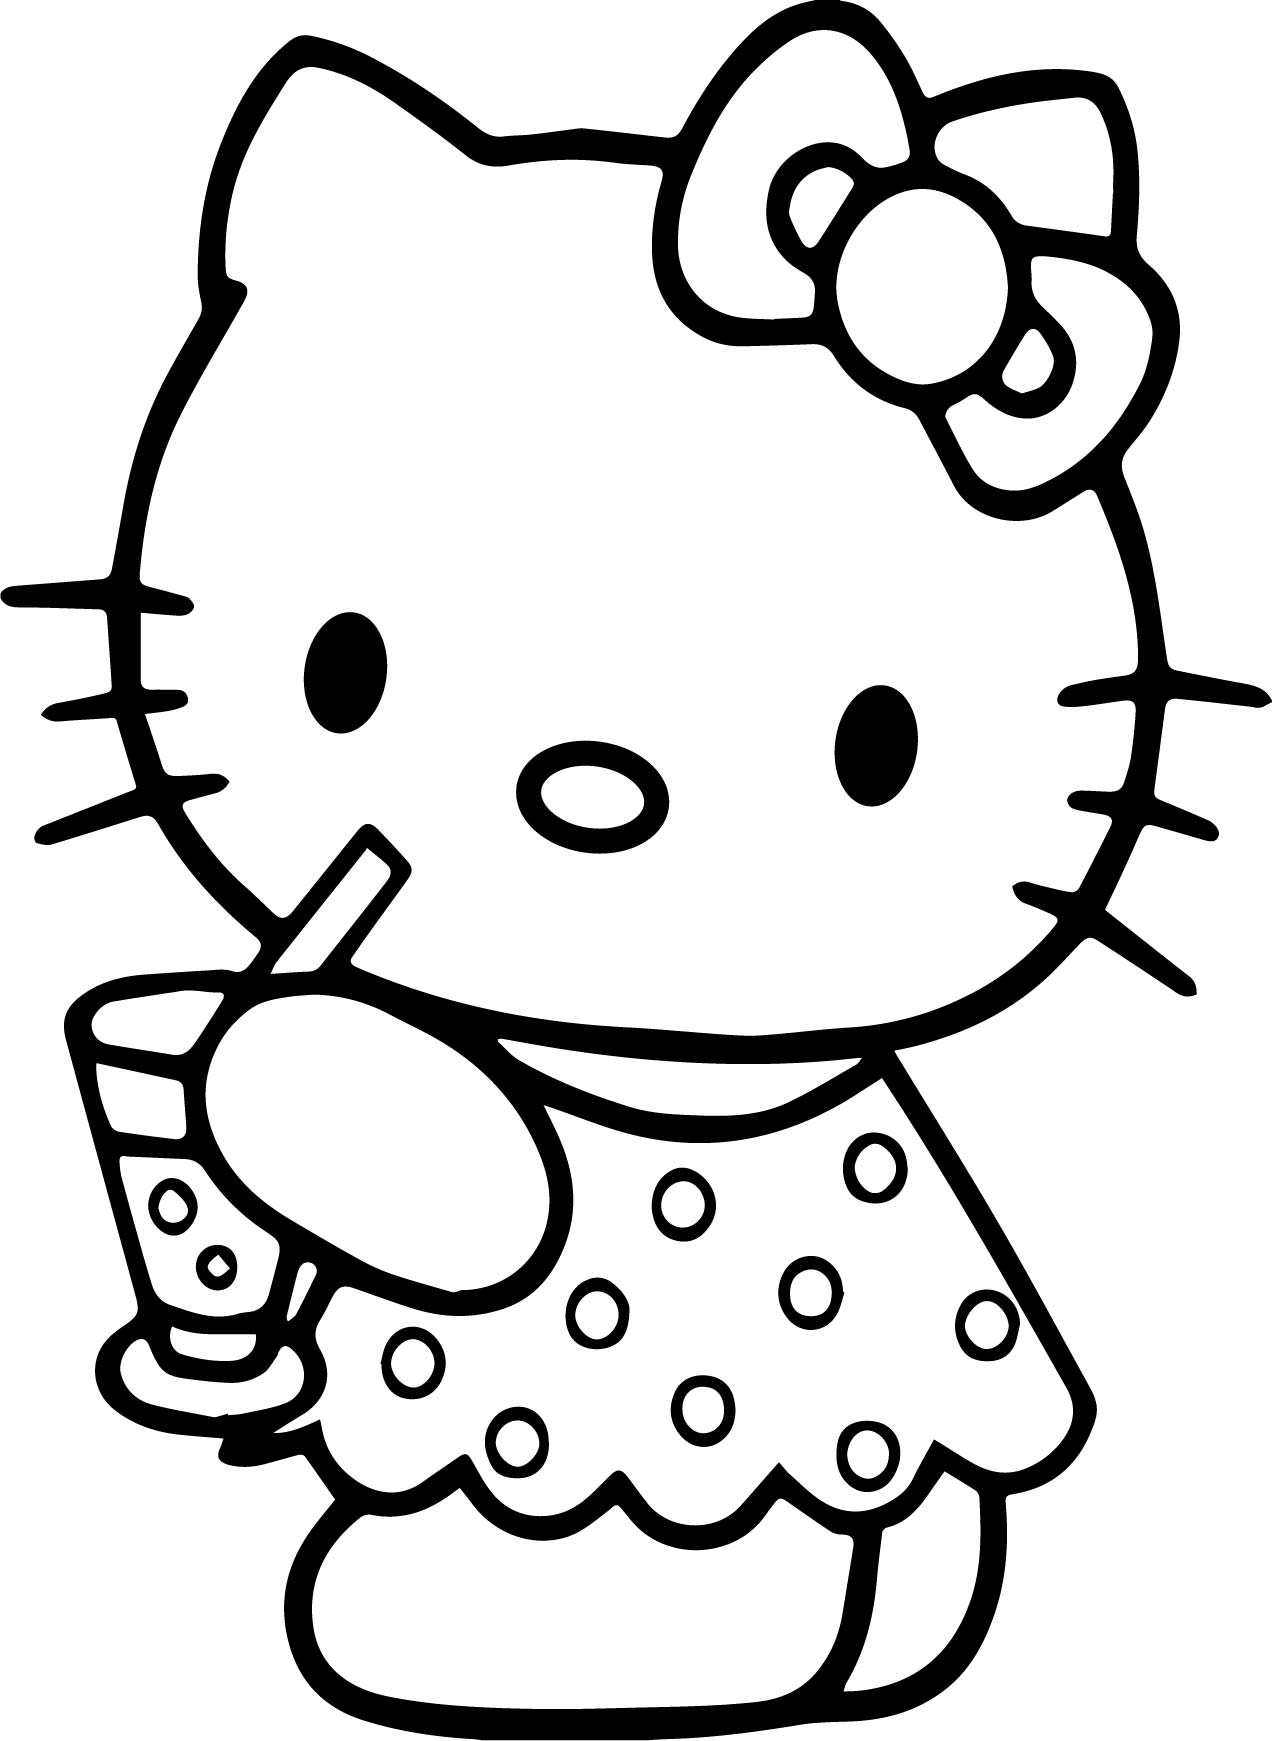 Hello Kitty With Balloons Coloring Pages : Hello kitty holding balloons coloring pages for kids